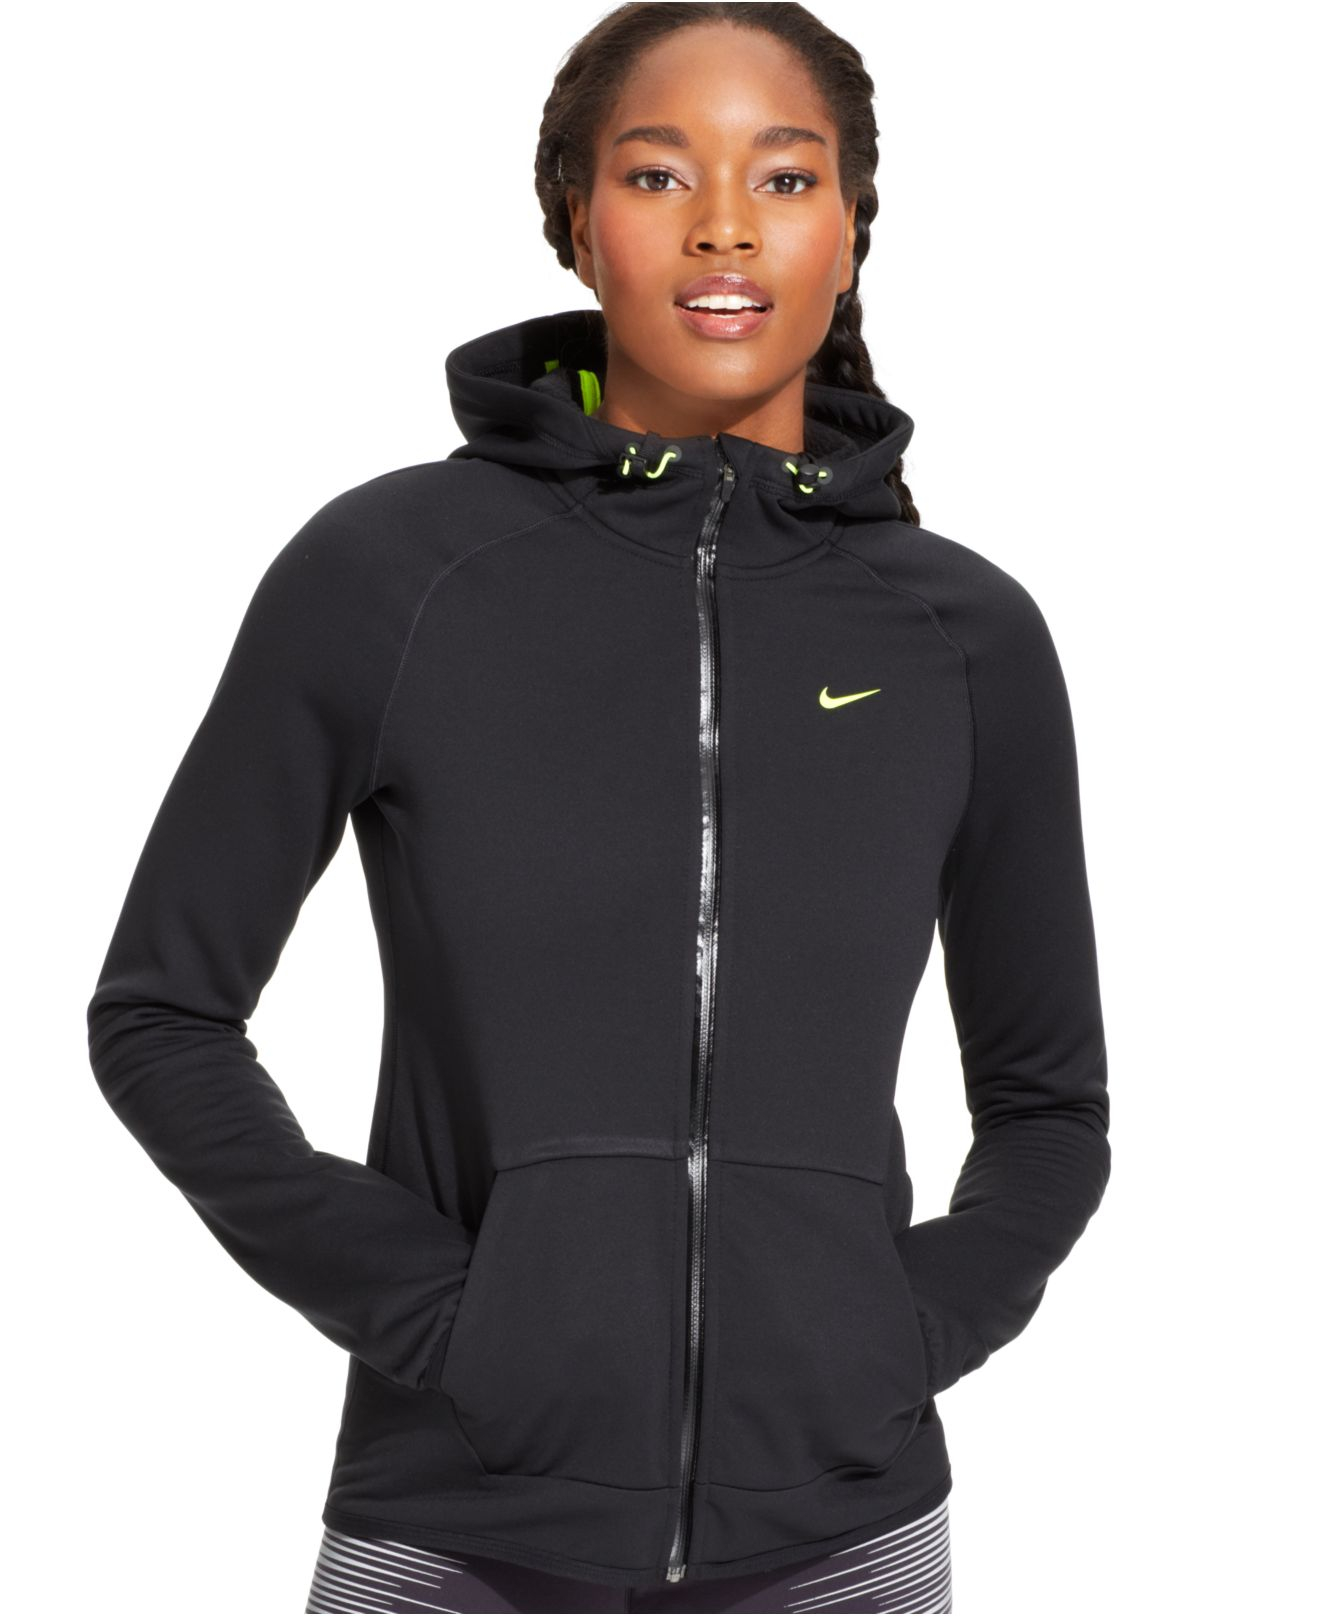 82349abe27a65 Nike Black All Time Tech Full-Zip Hoodie